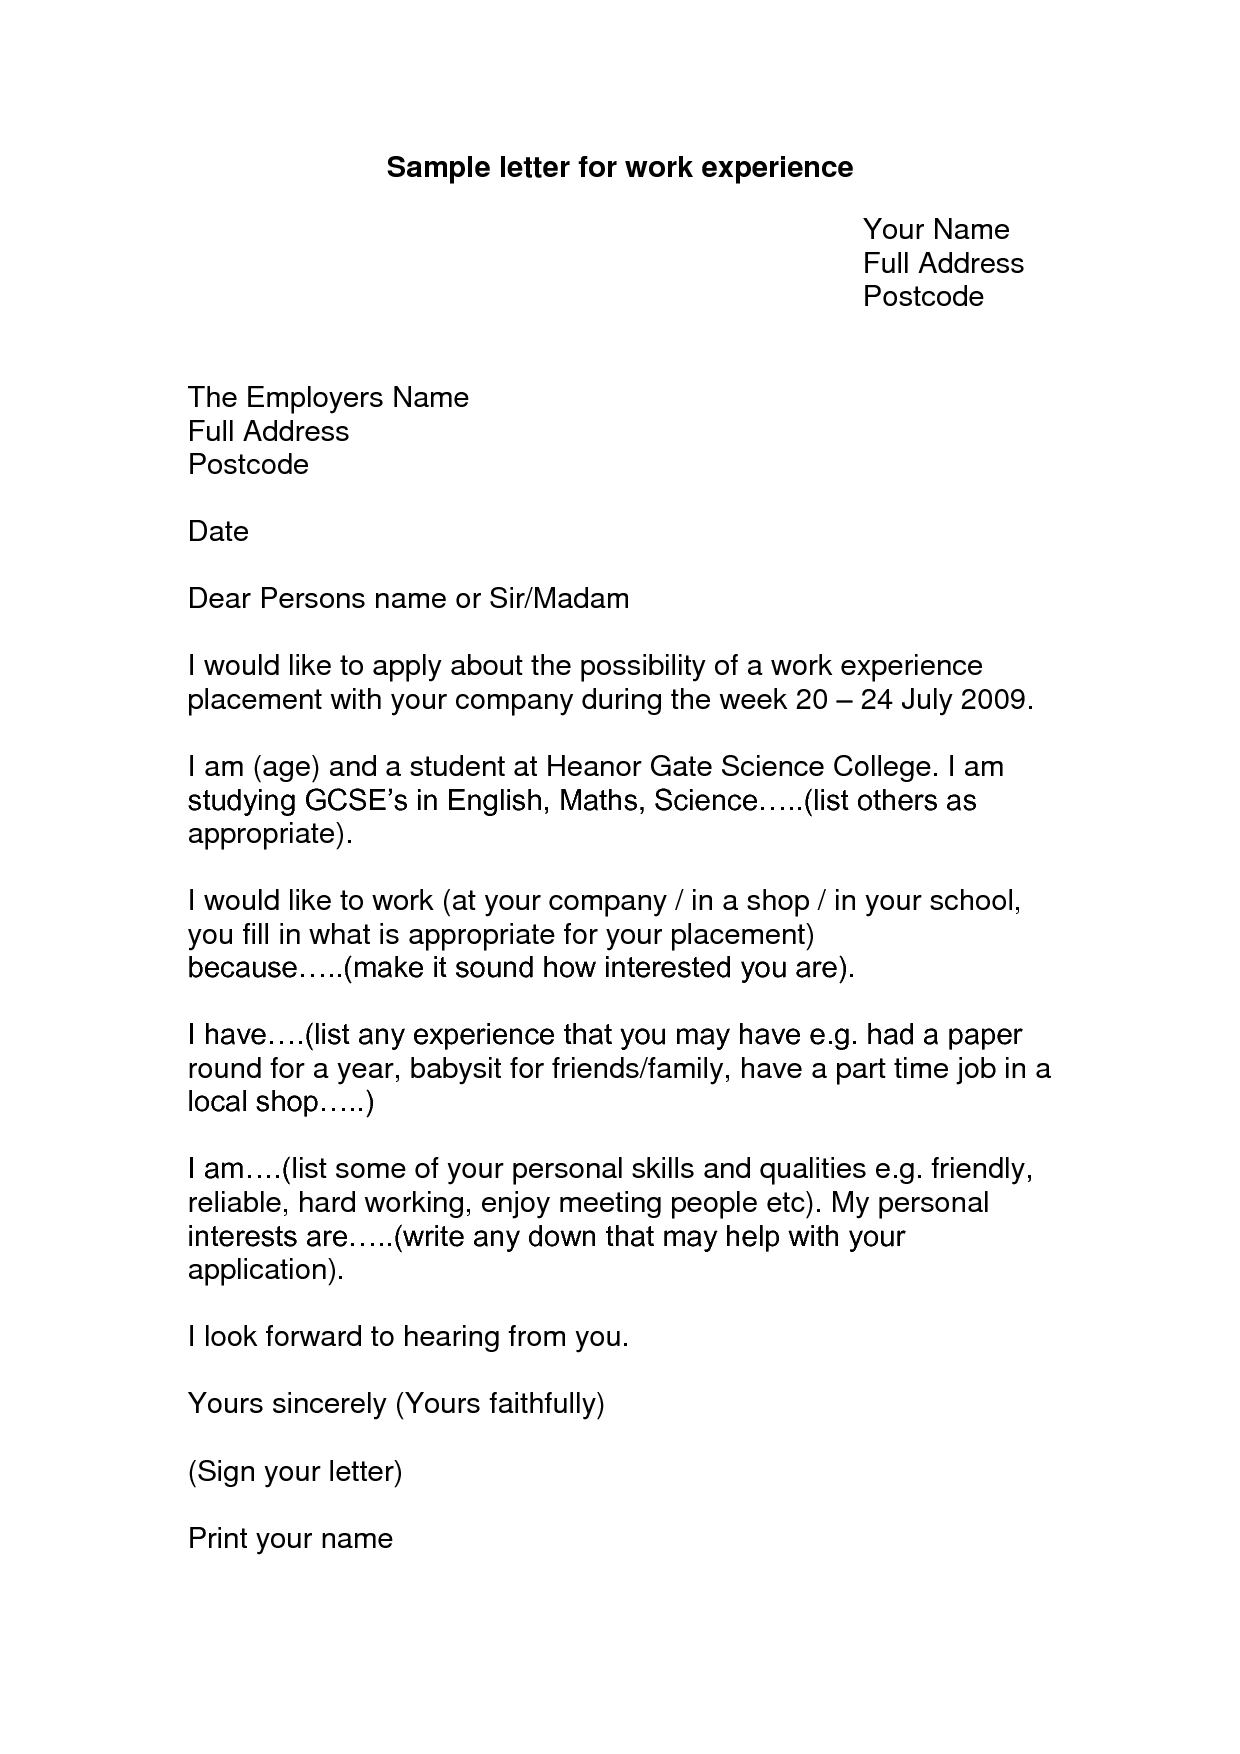 Work experience letter example google search looking for jobs dear madam or sir cover letter cover letter of a resume cover letter salary requirement job text yelopaper Gallery